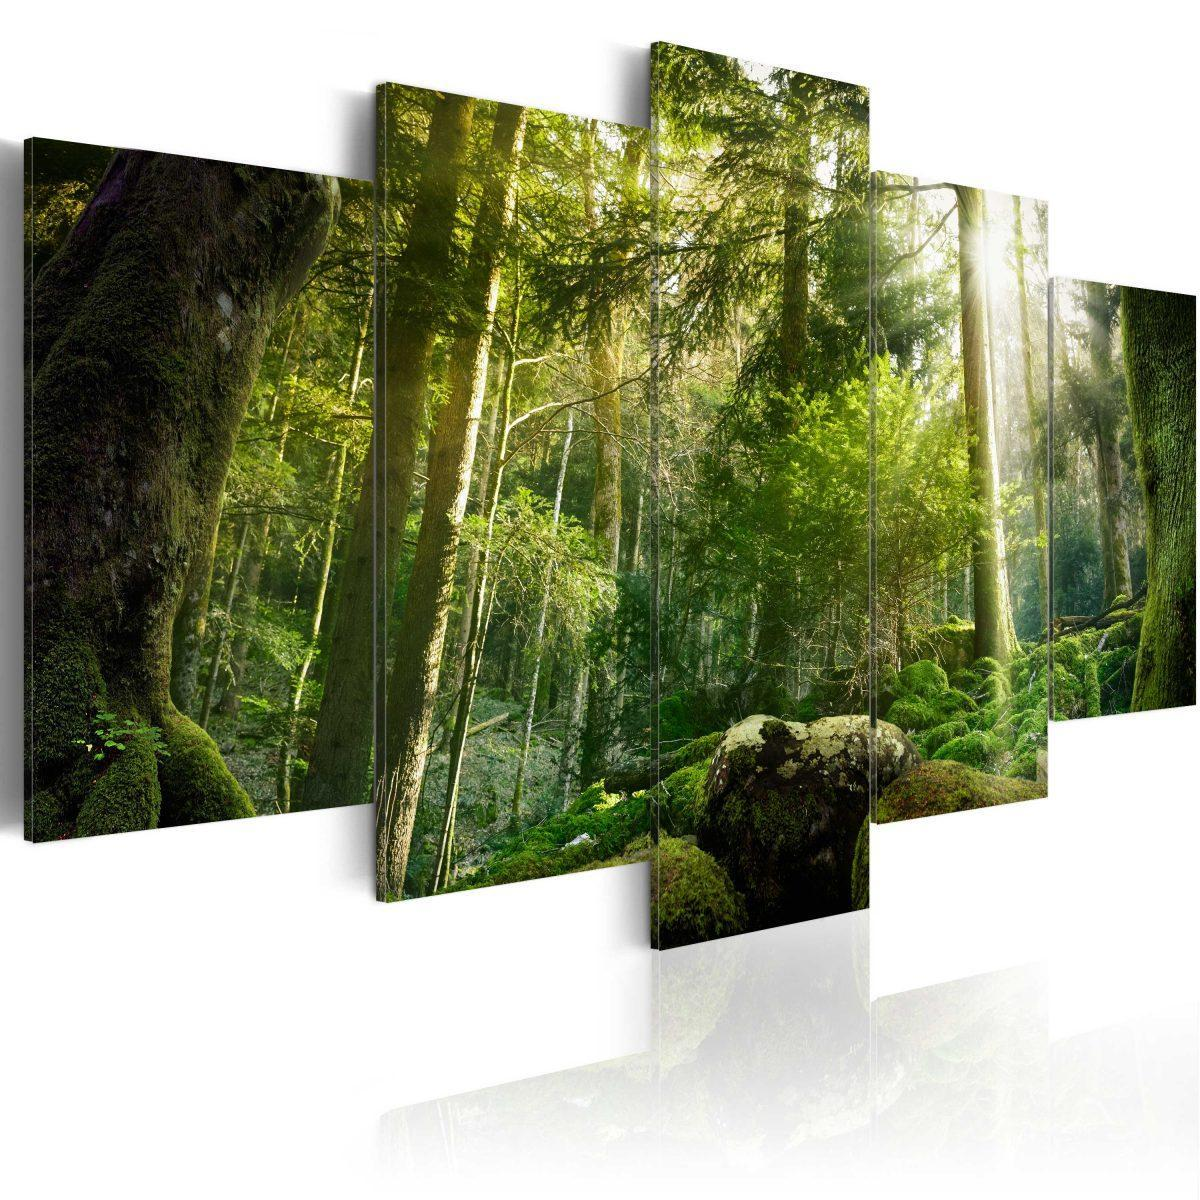 Canvas Tavla - The Beauty of the Forest - 200x100